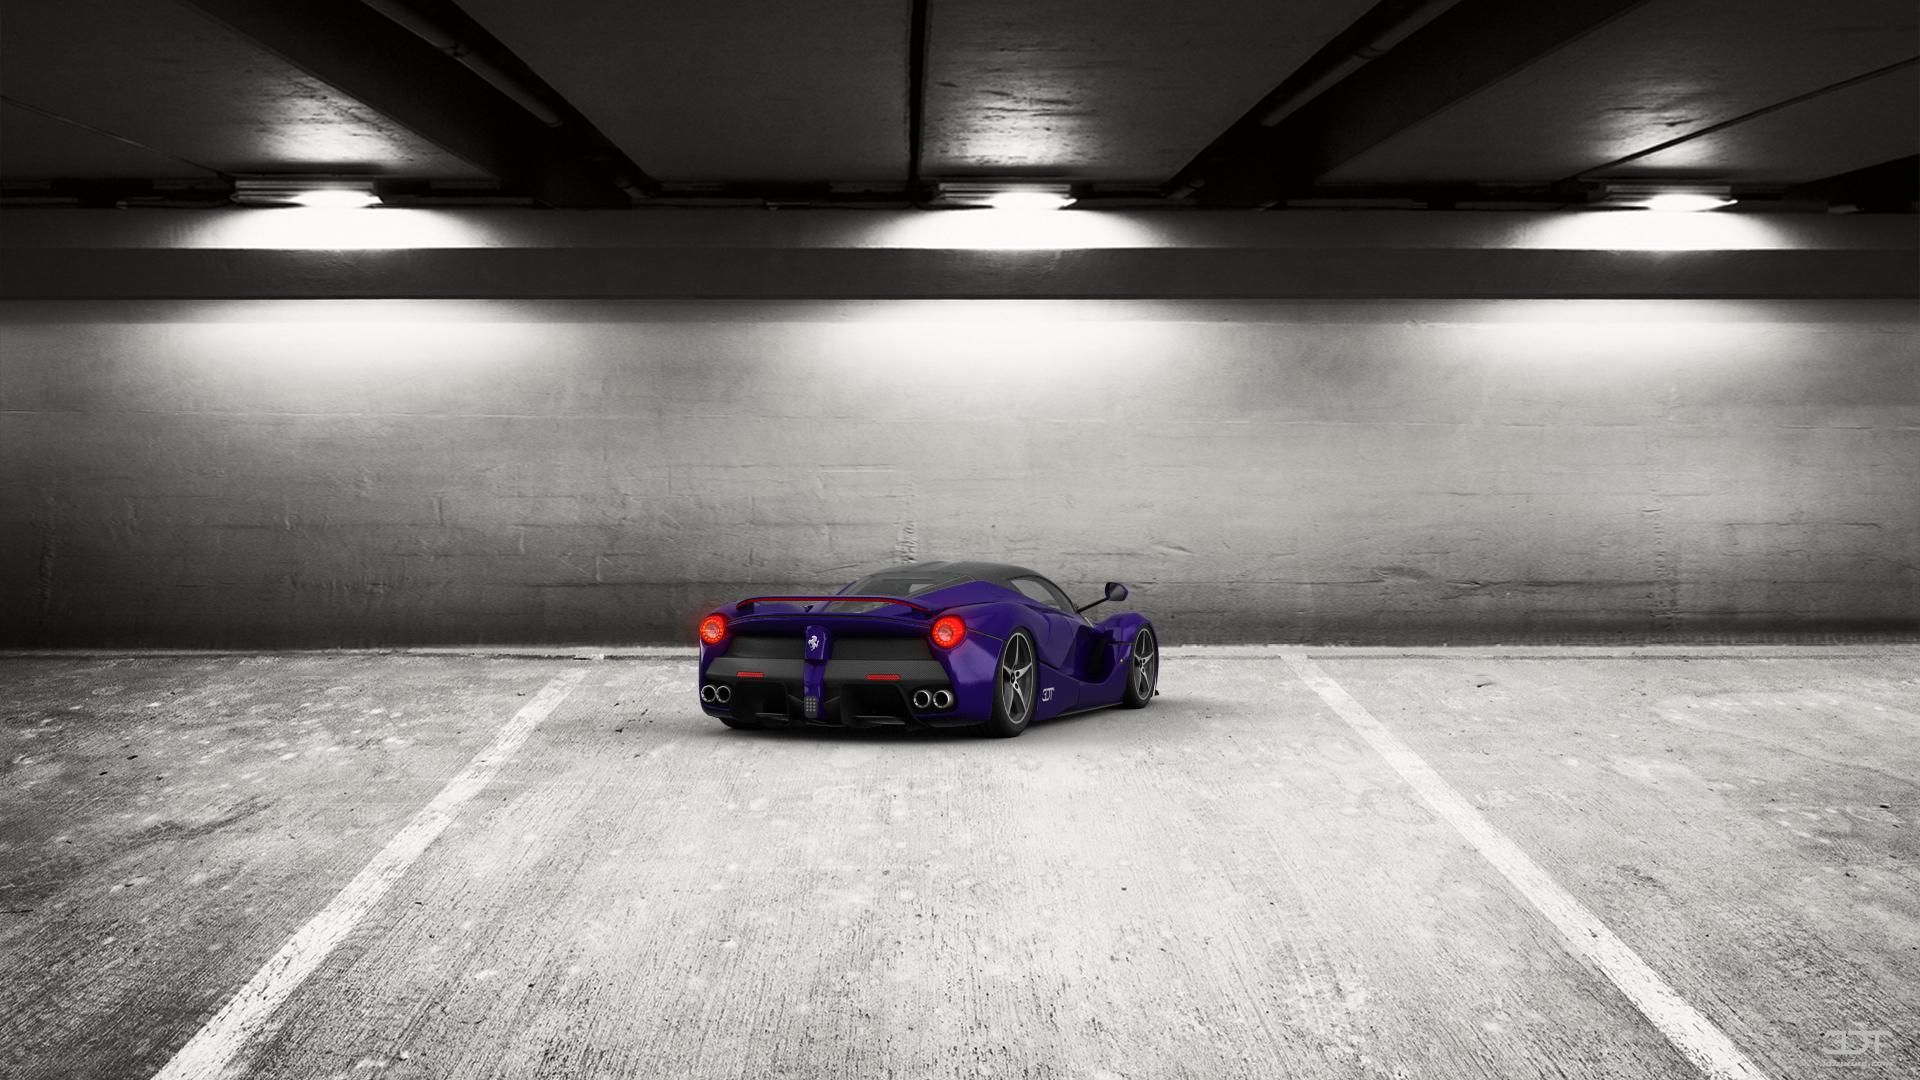 Attractive Checkout My Tuning #Ferrari #LaFerrari 2014 At 3DTuning #3dtuning #tuning Nice Design